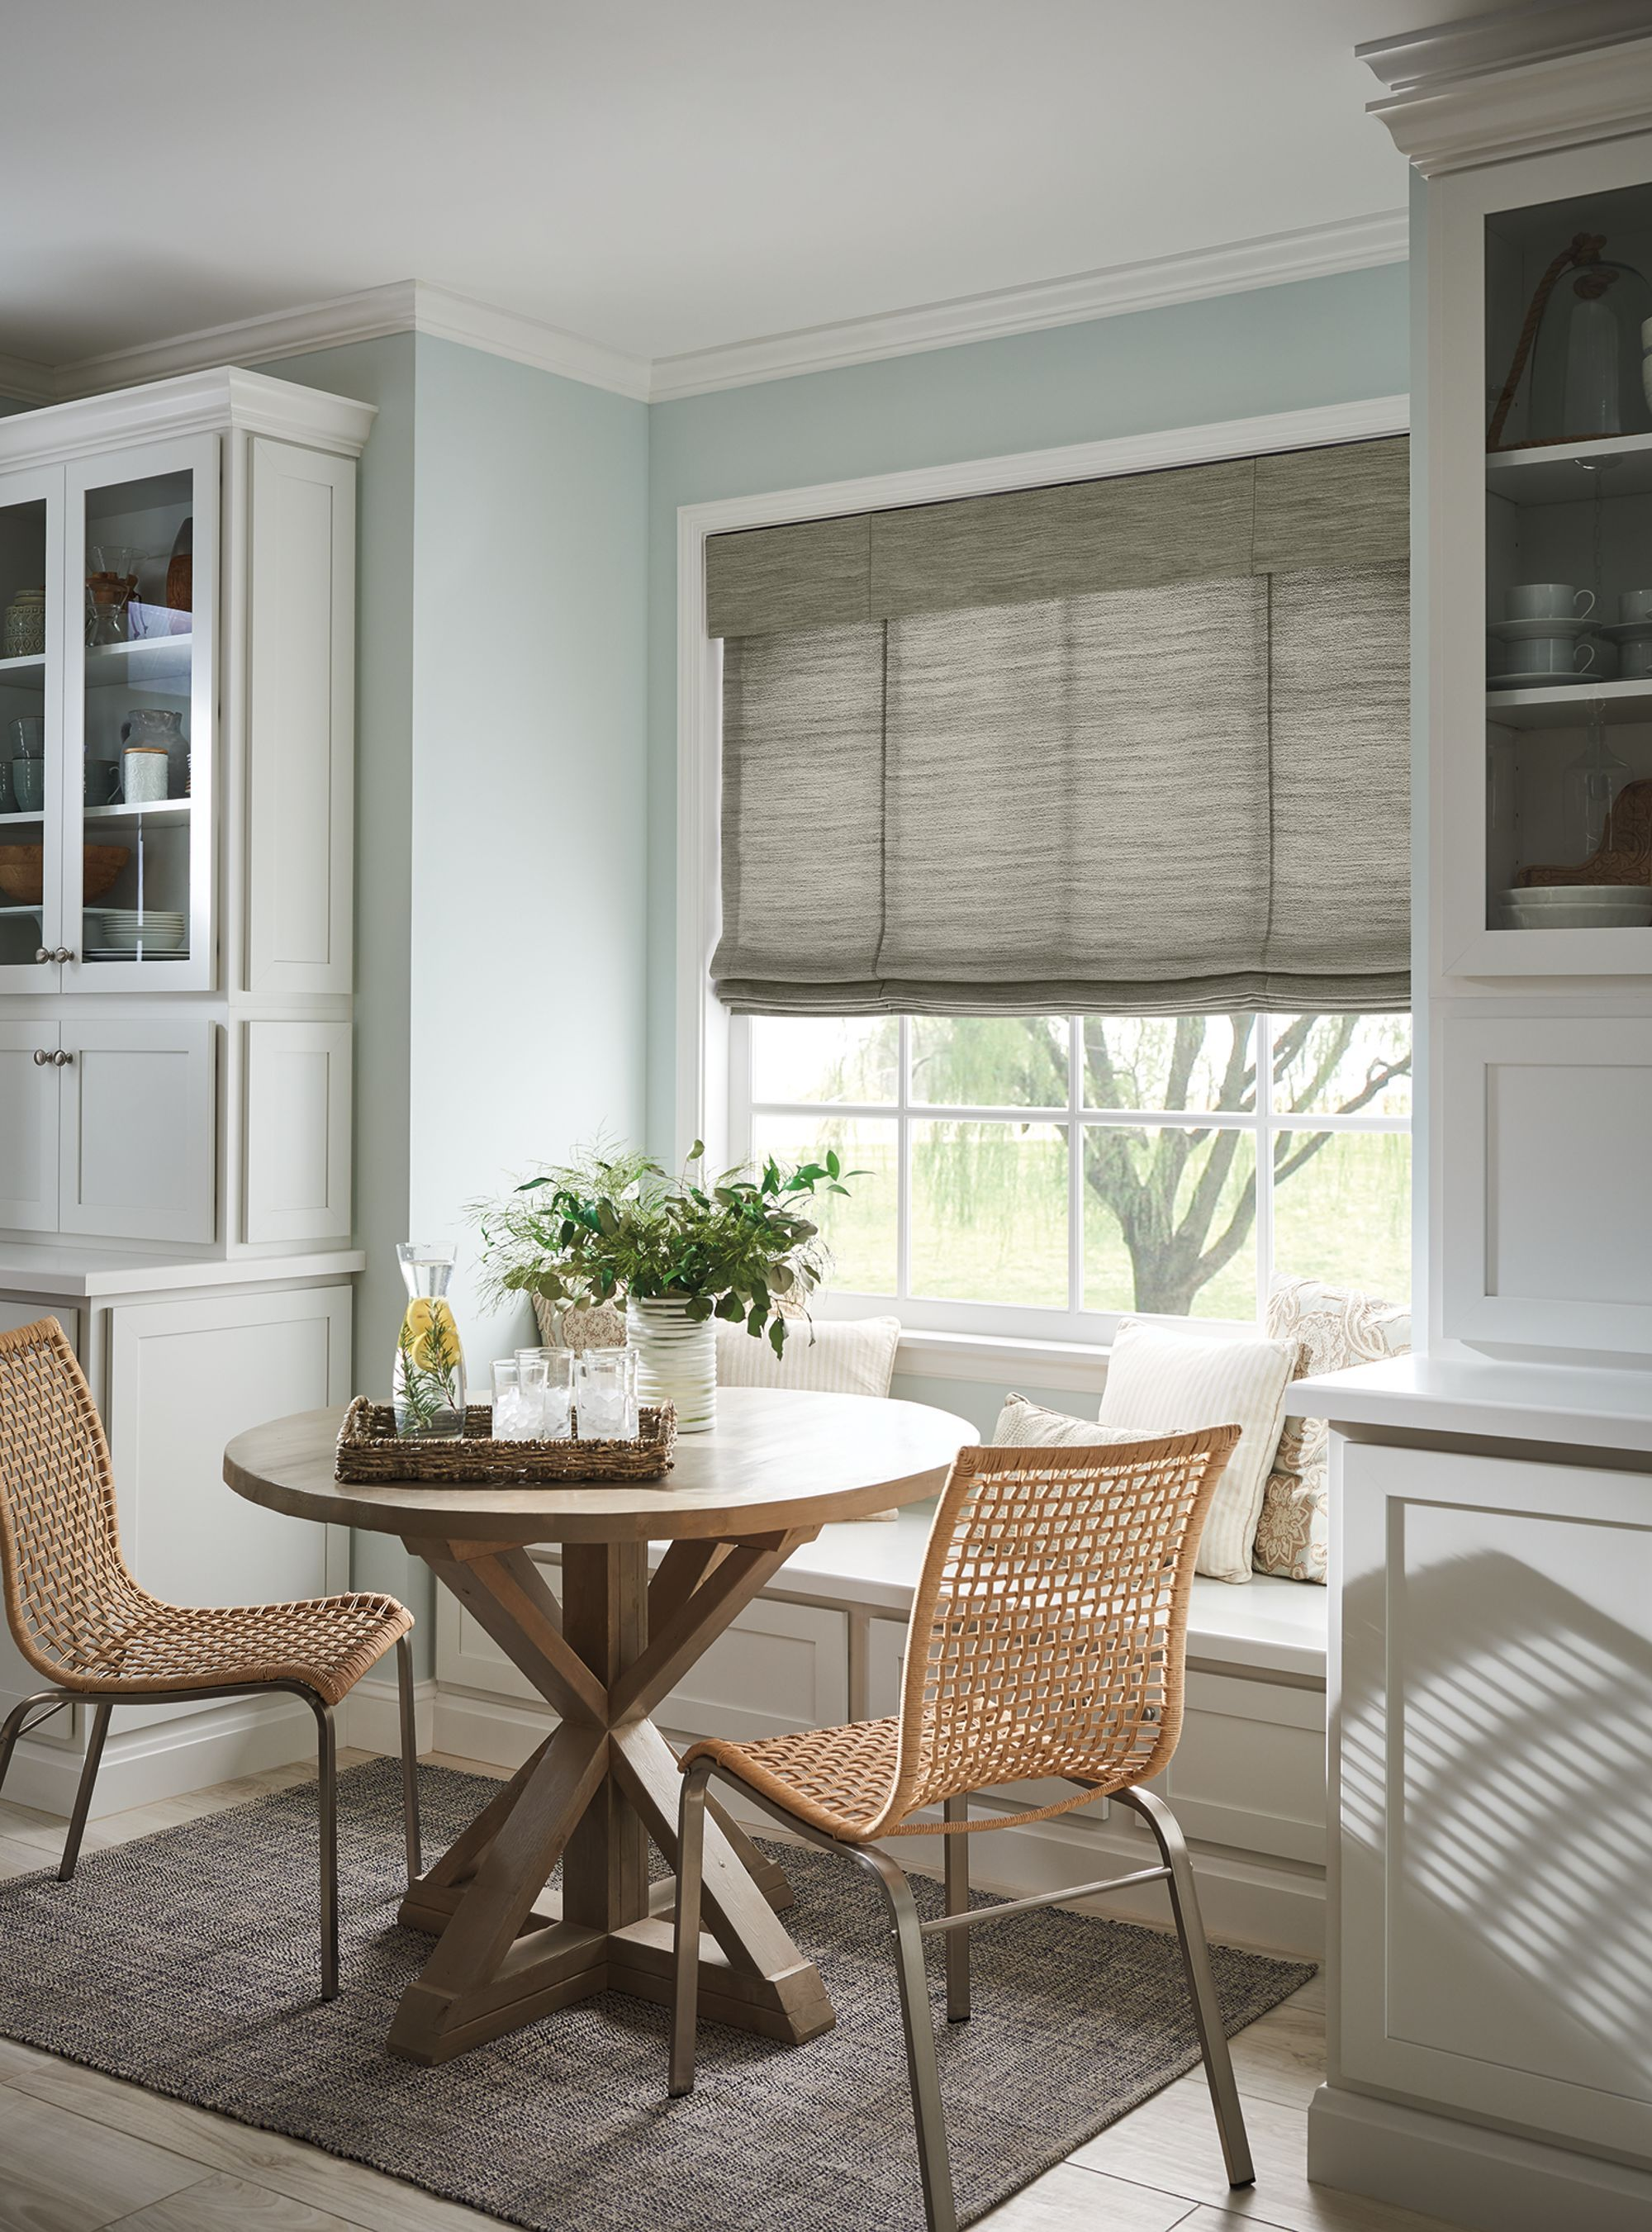 Sliding door fabric vertical blinds with standard chaincord